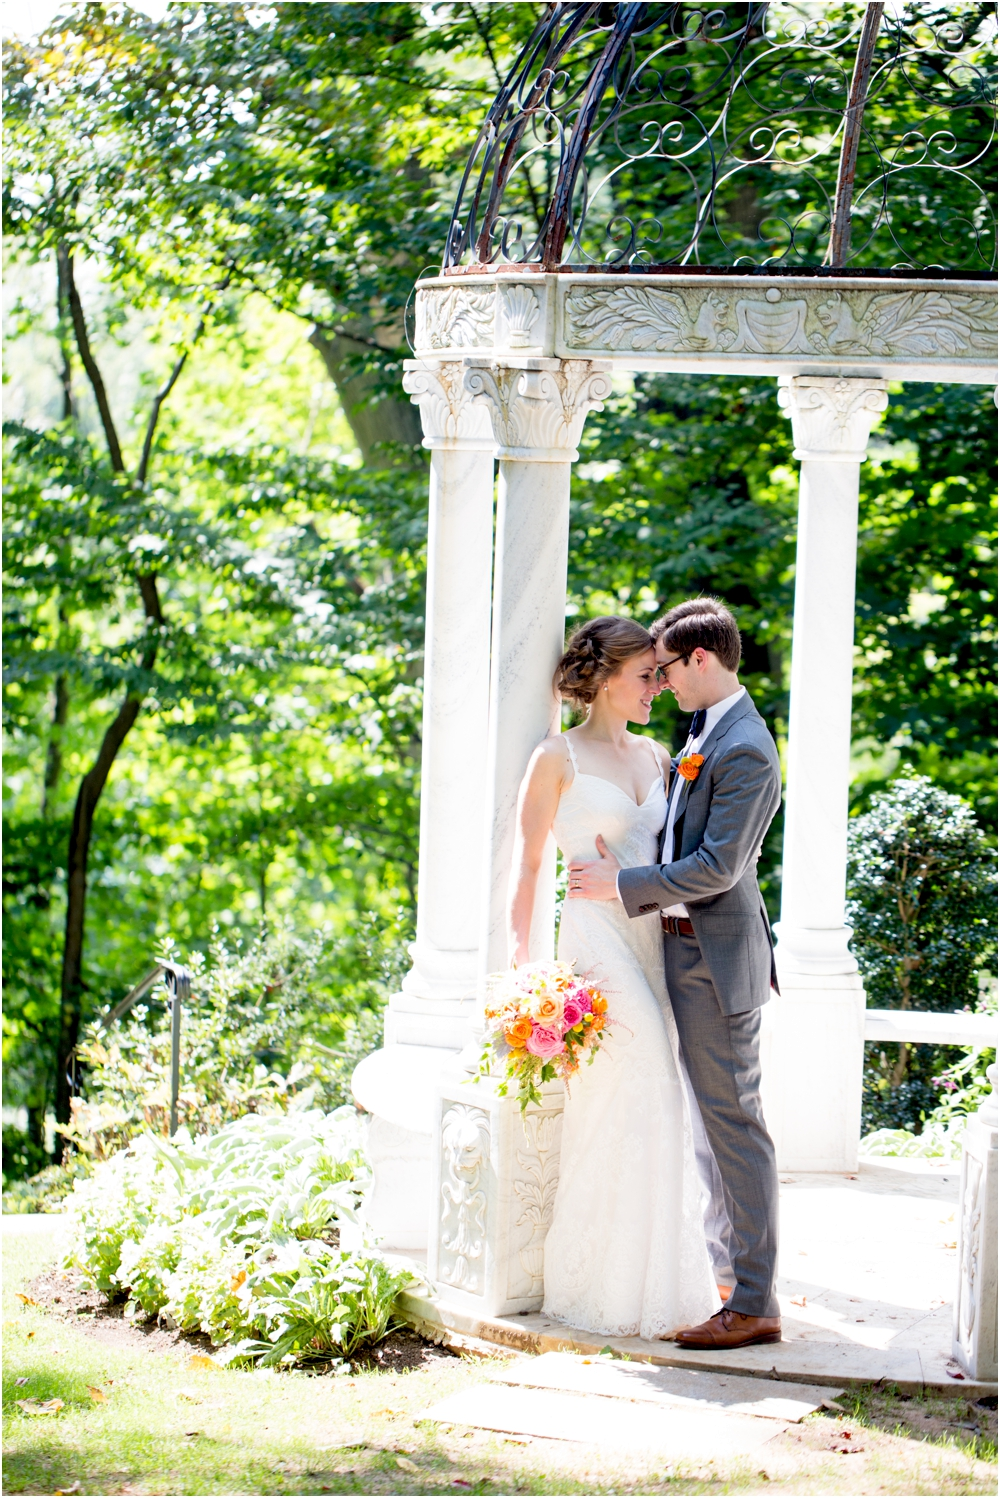 daniel chrissy gramercy mansion outdoor garden wedding living radiant photography_0111.jpg